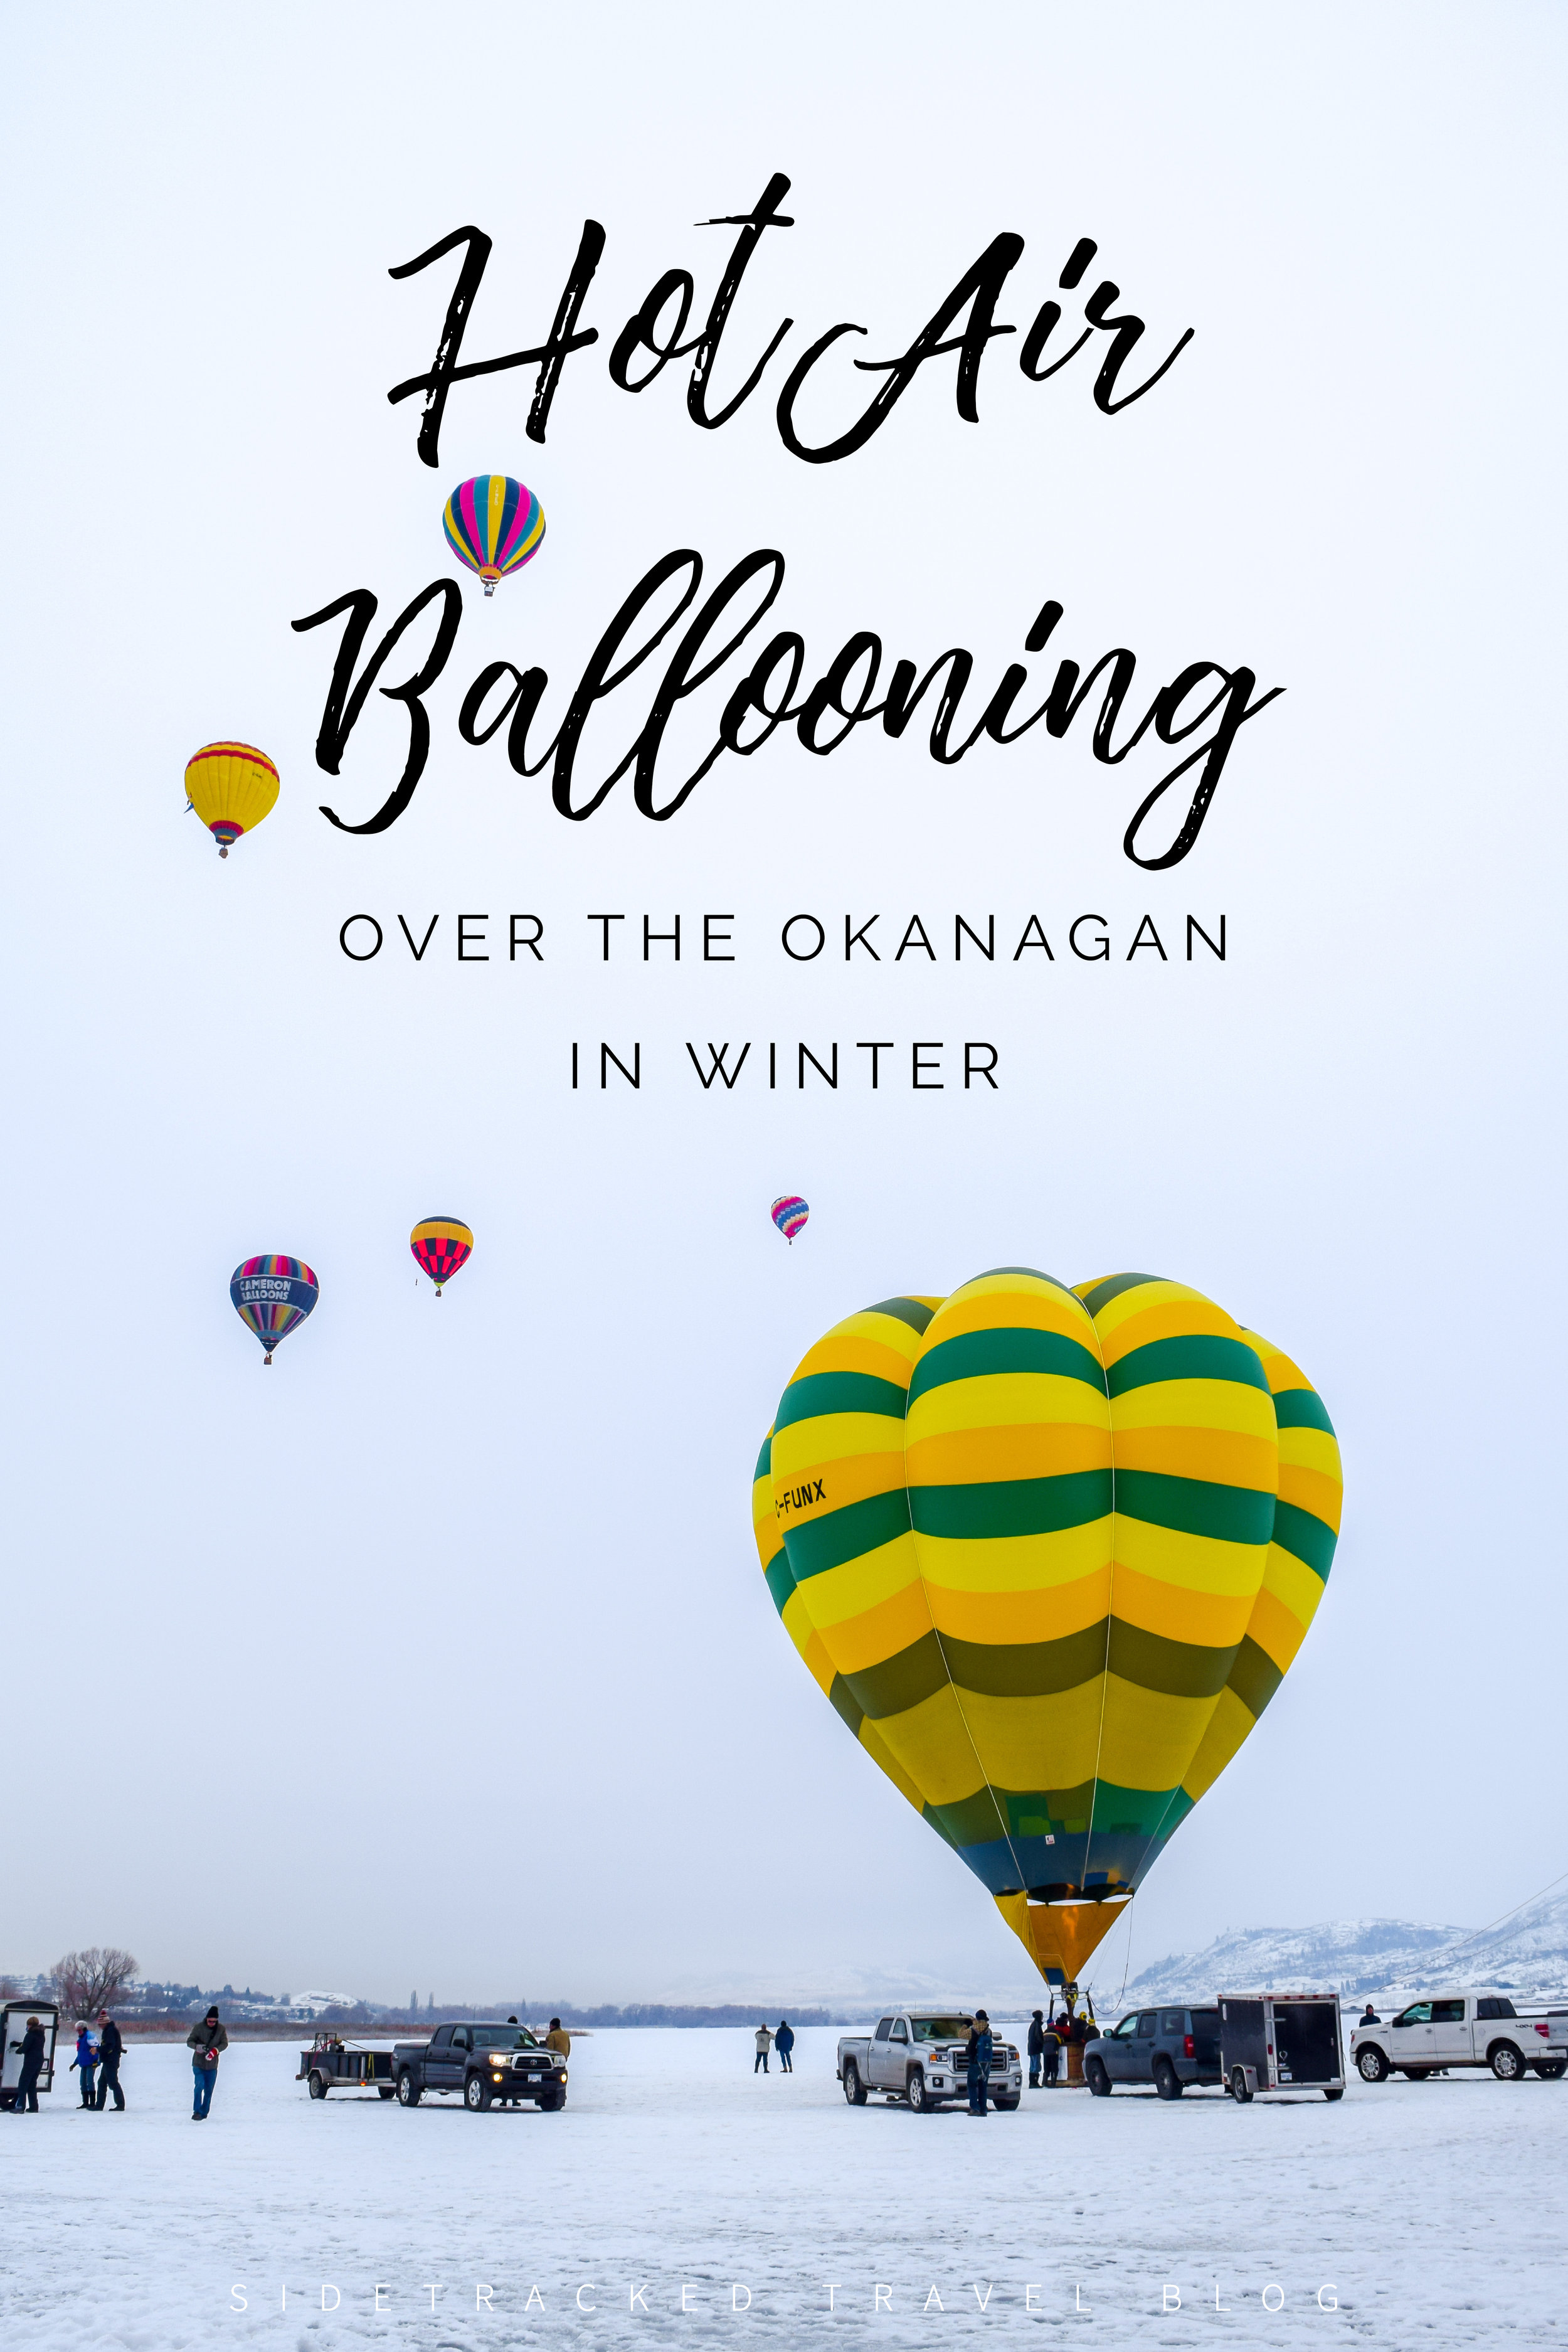 Looking to tick hot air ballooning off your bucket list? Why not do so with a snowy winter flight over the Okanagan Valley - it's an experience you won't soon forget!